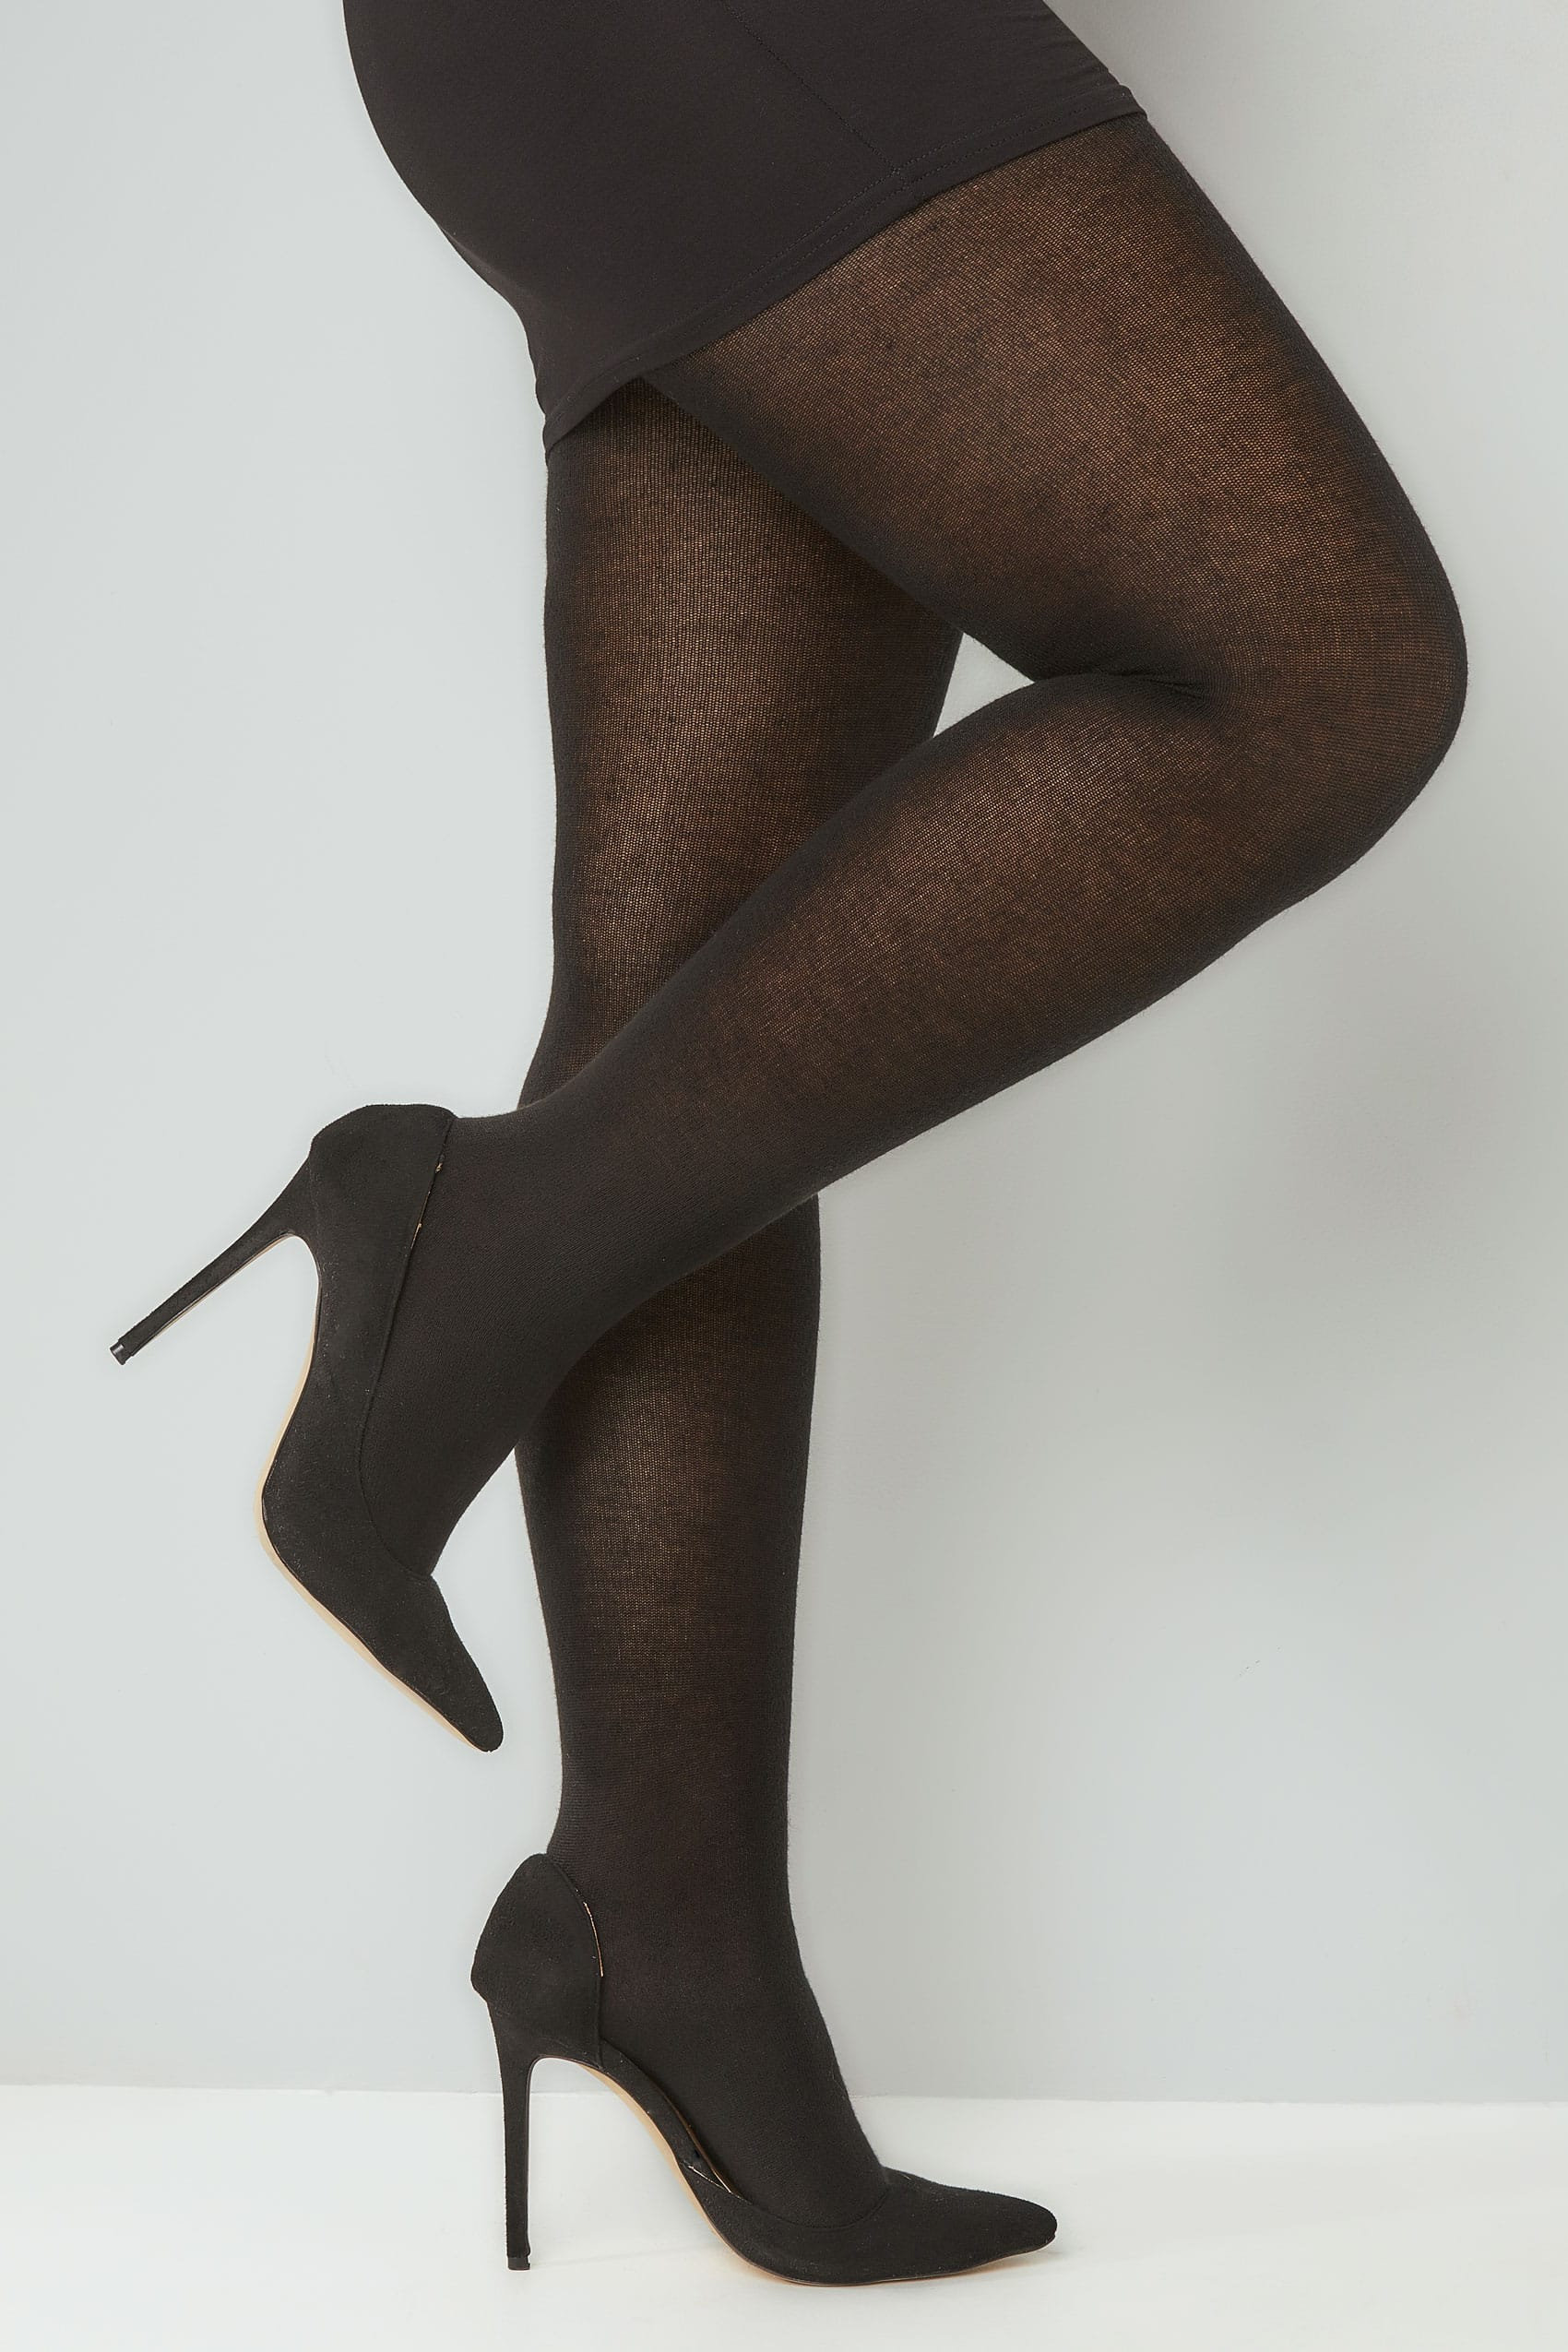 united states top-rated exquisite craftsmanship Black 200 Denier Super Soft Thick Tights